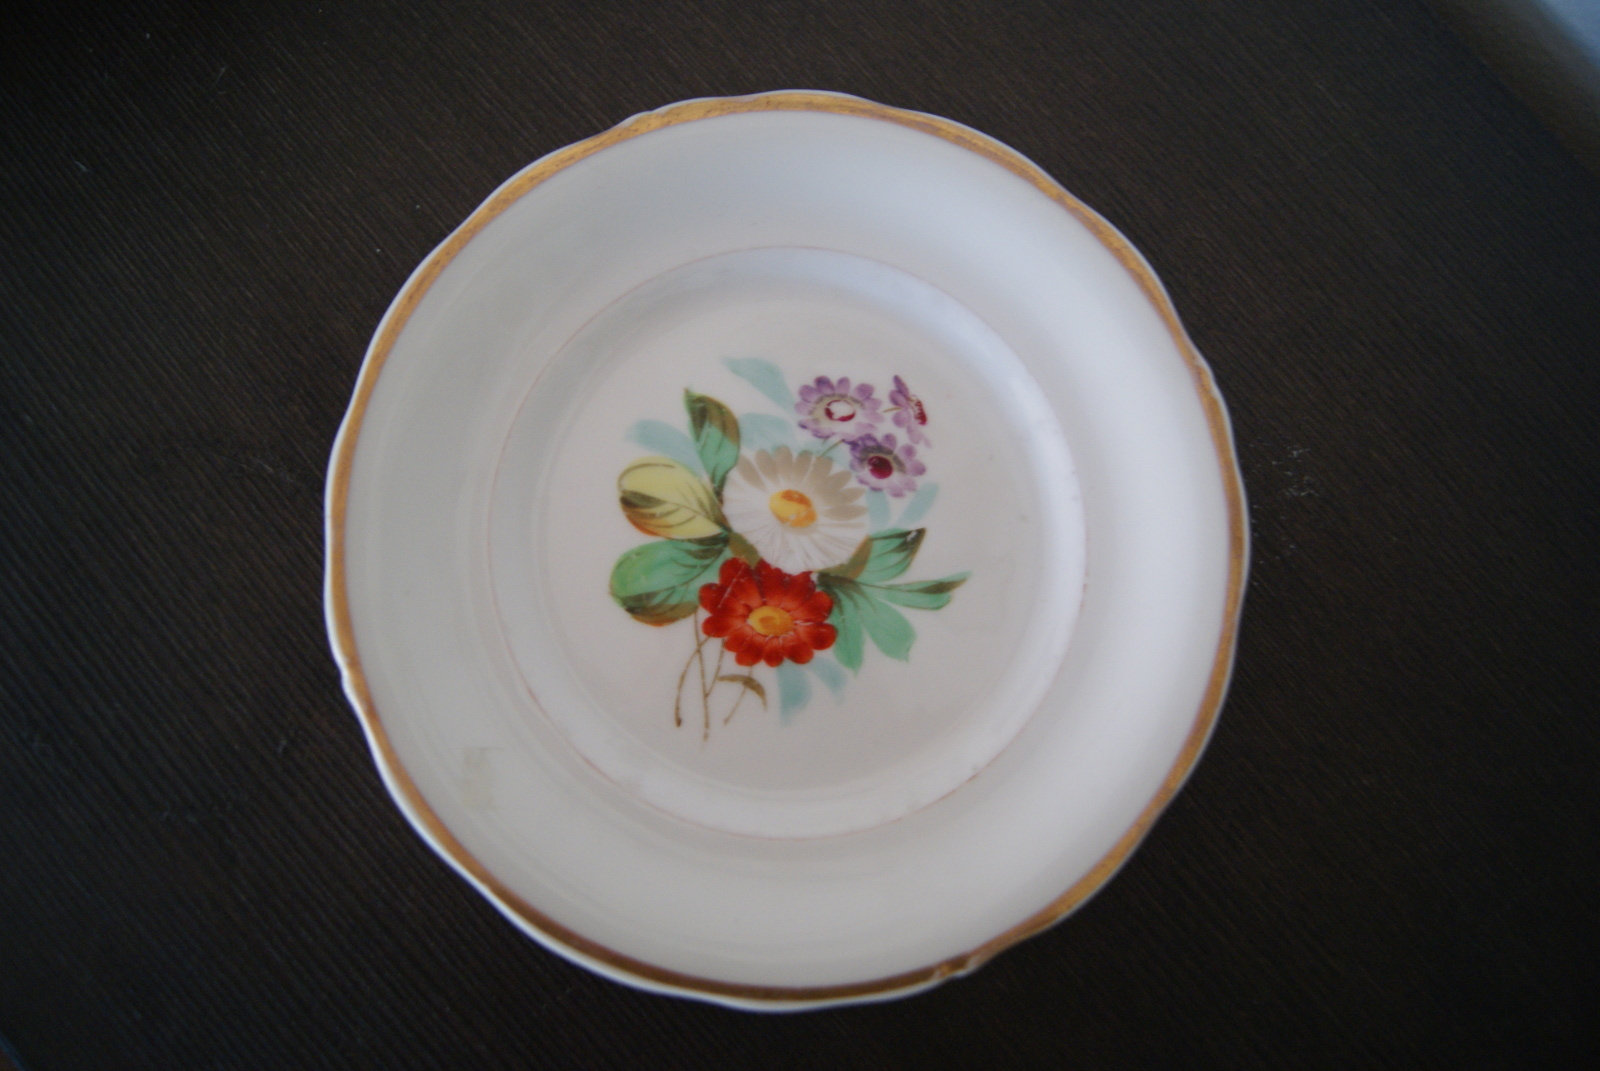 Waldenburg plate with bouquet, flowers and leaves